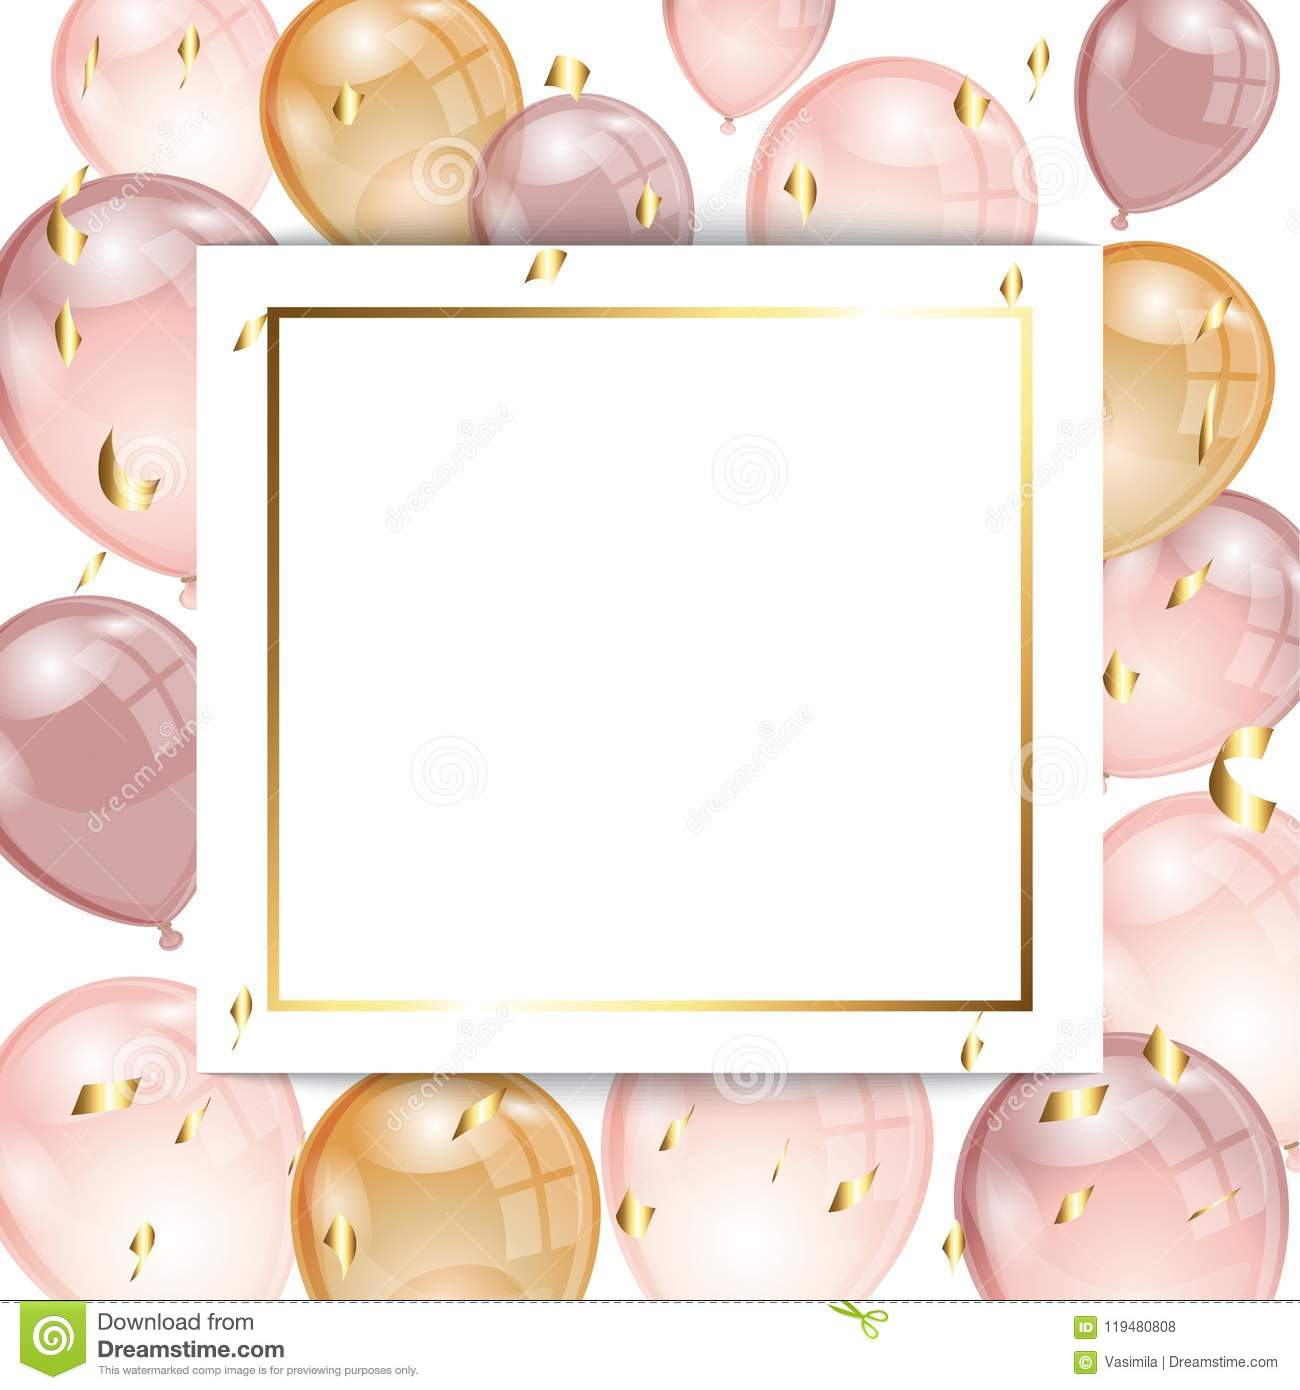 Background With Balloons And Confetti Stock Vector Illustration Of Rose Happy 119480808